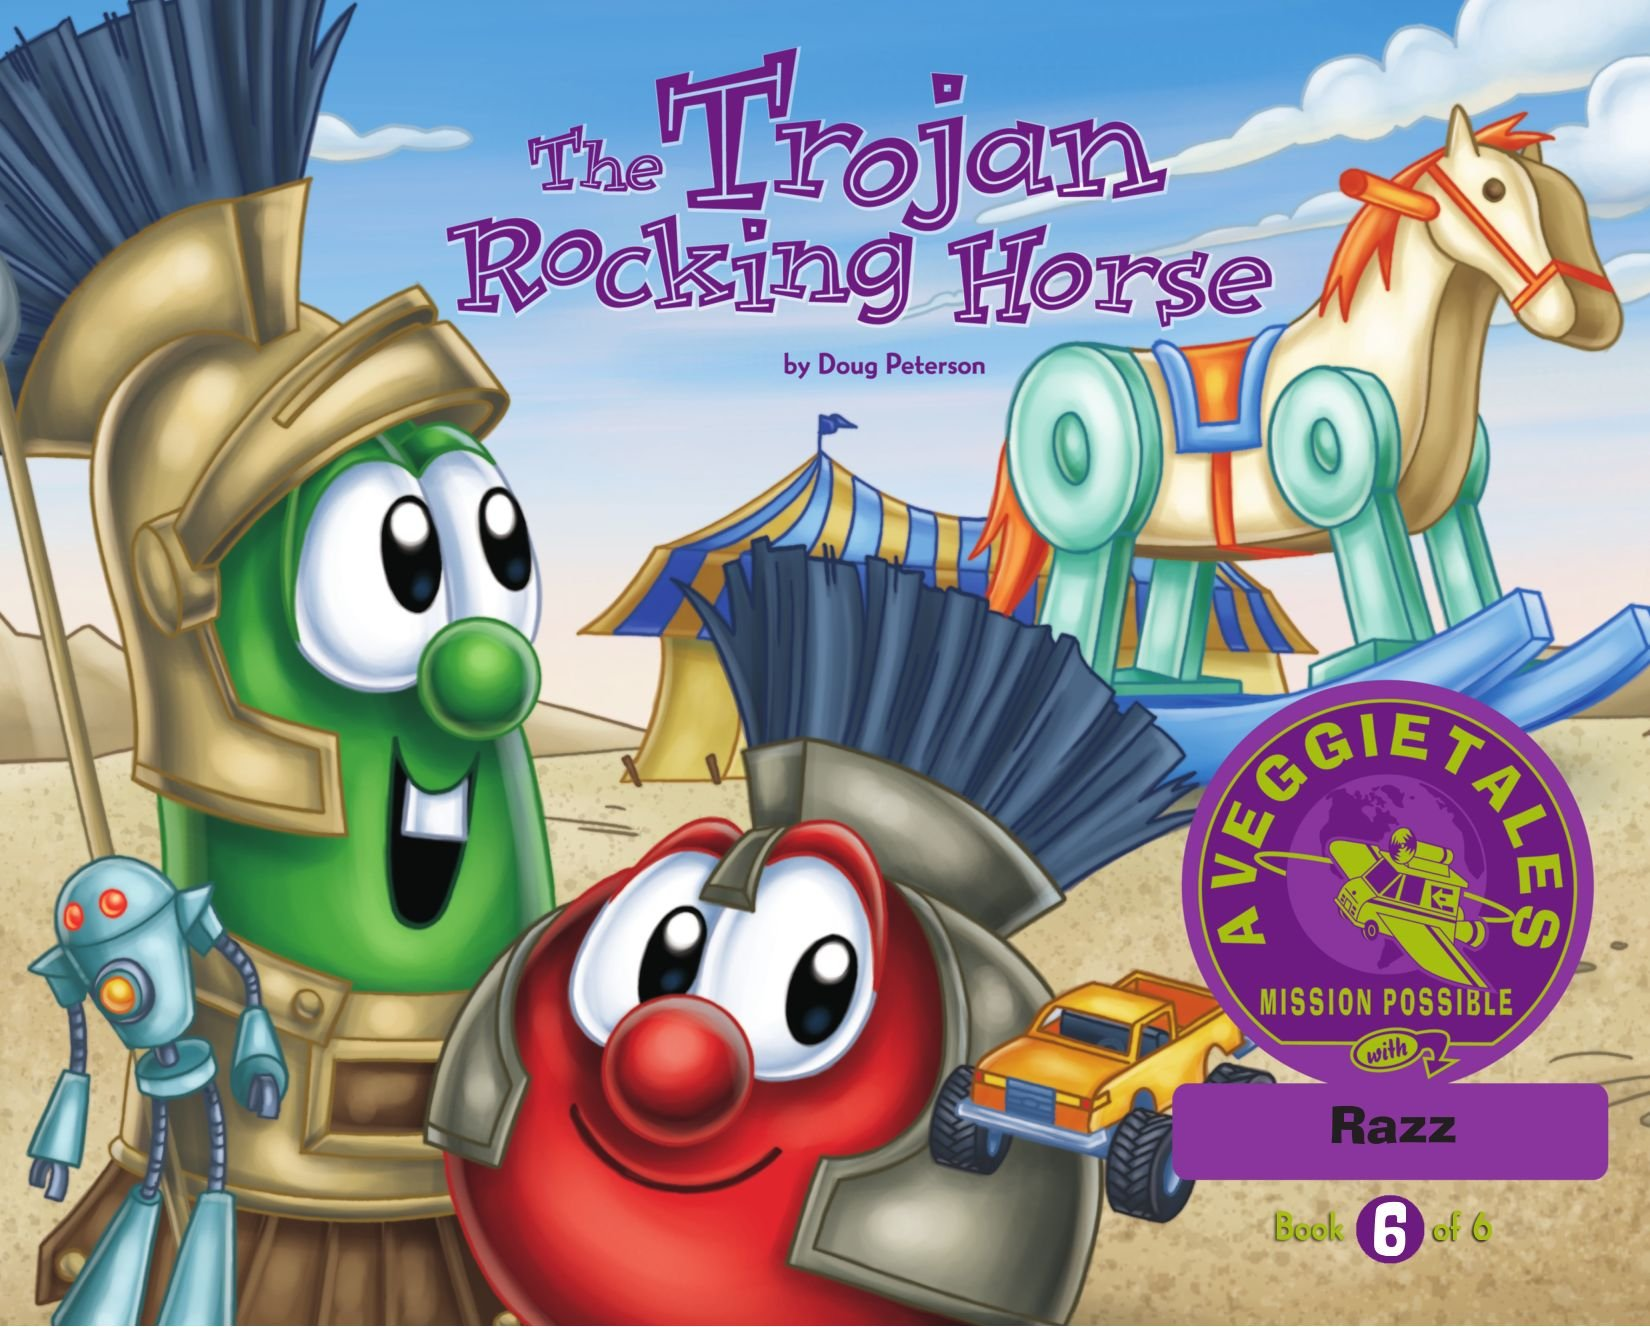 The Trojan Rocking Horse - VeggieTales Mission Possible Adventure Series #6: Personalized for Razz (Girl) ebook